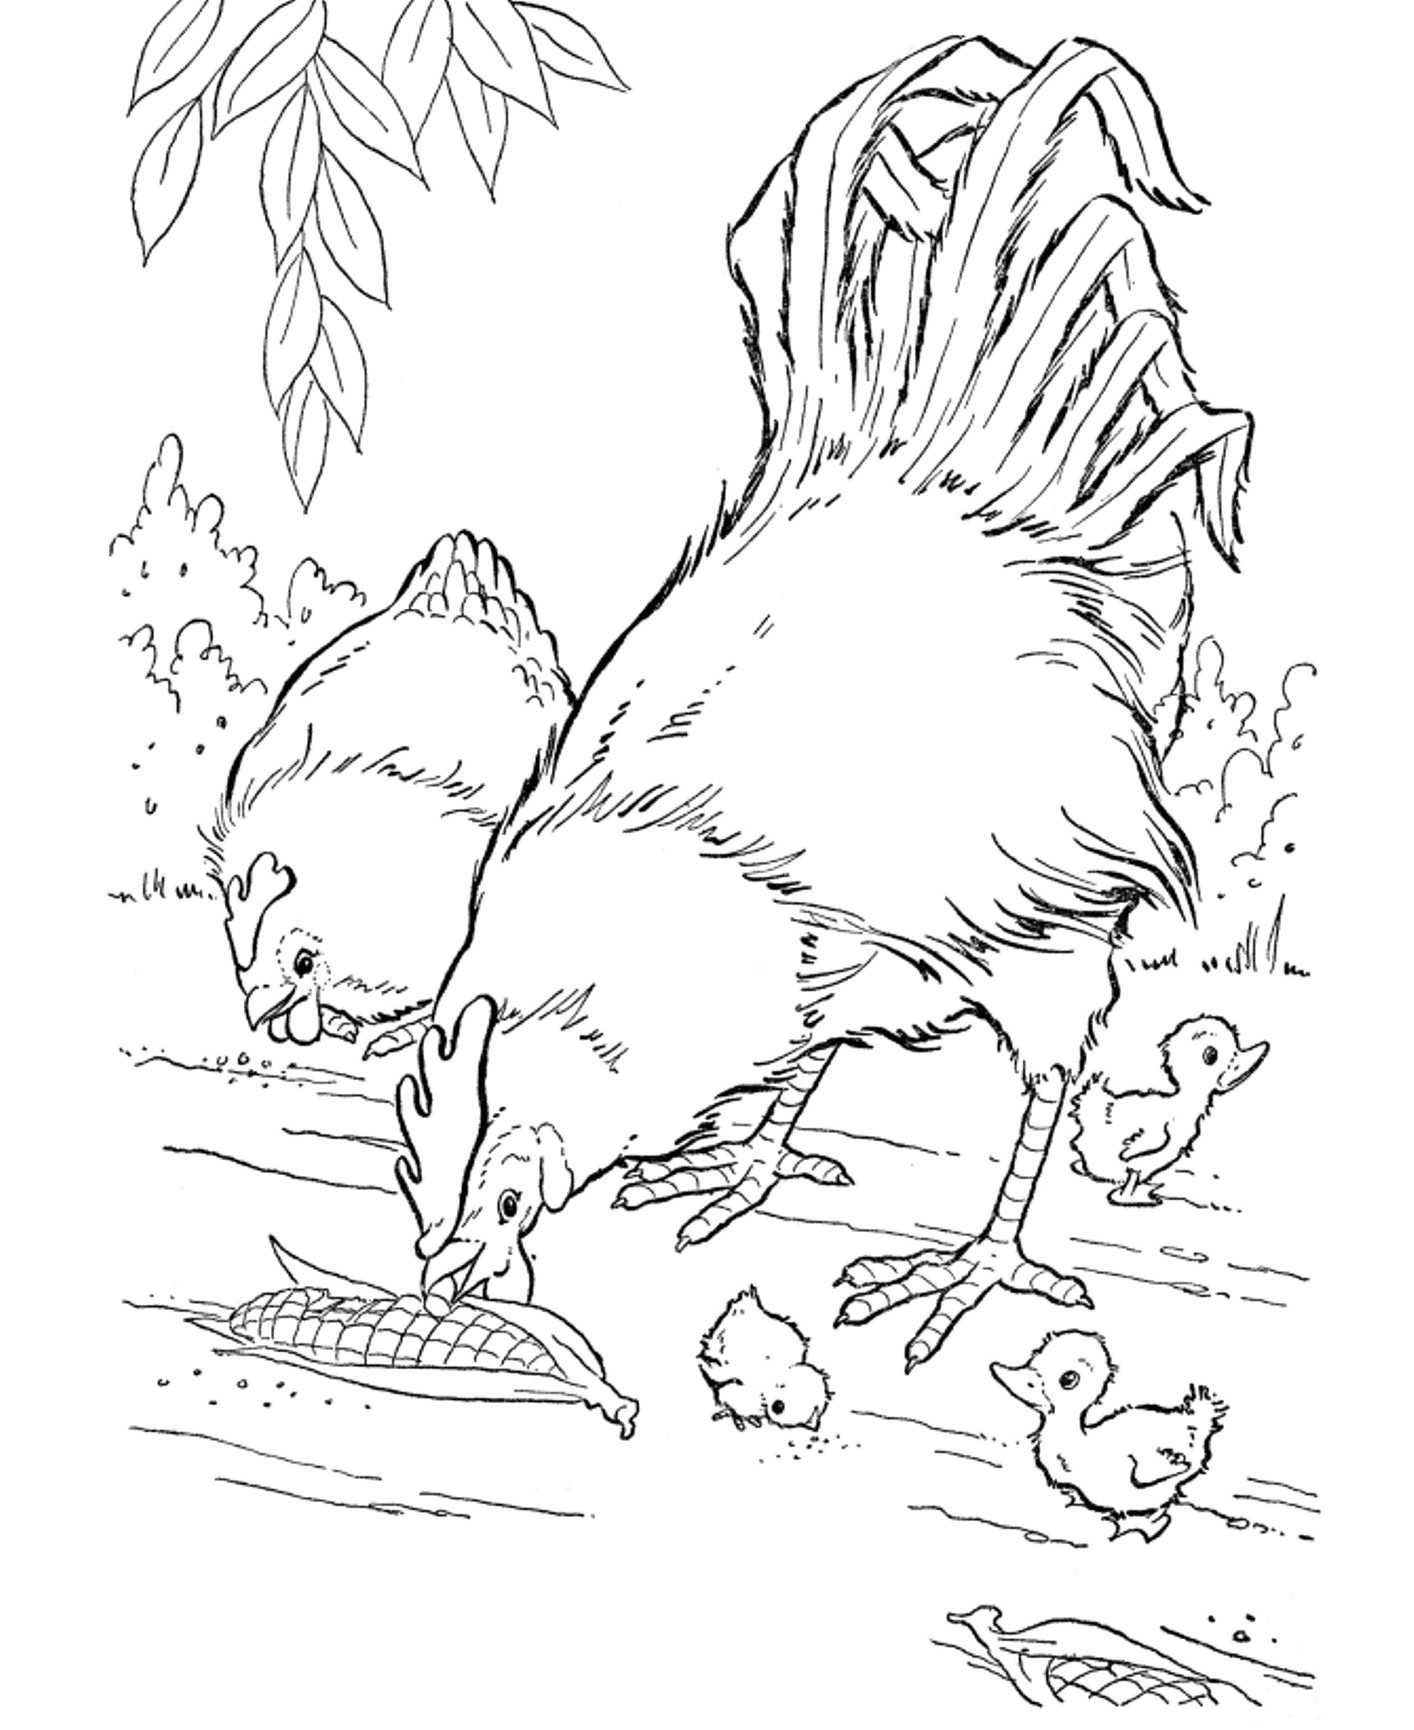 Coloring Pages : Farm Animal Coloring Book Free Printable Pdf - Free Printable Farm Animal Pictures